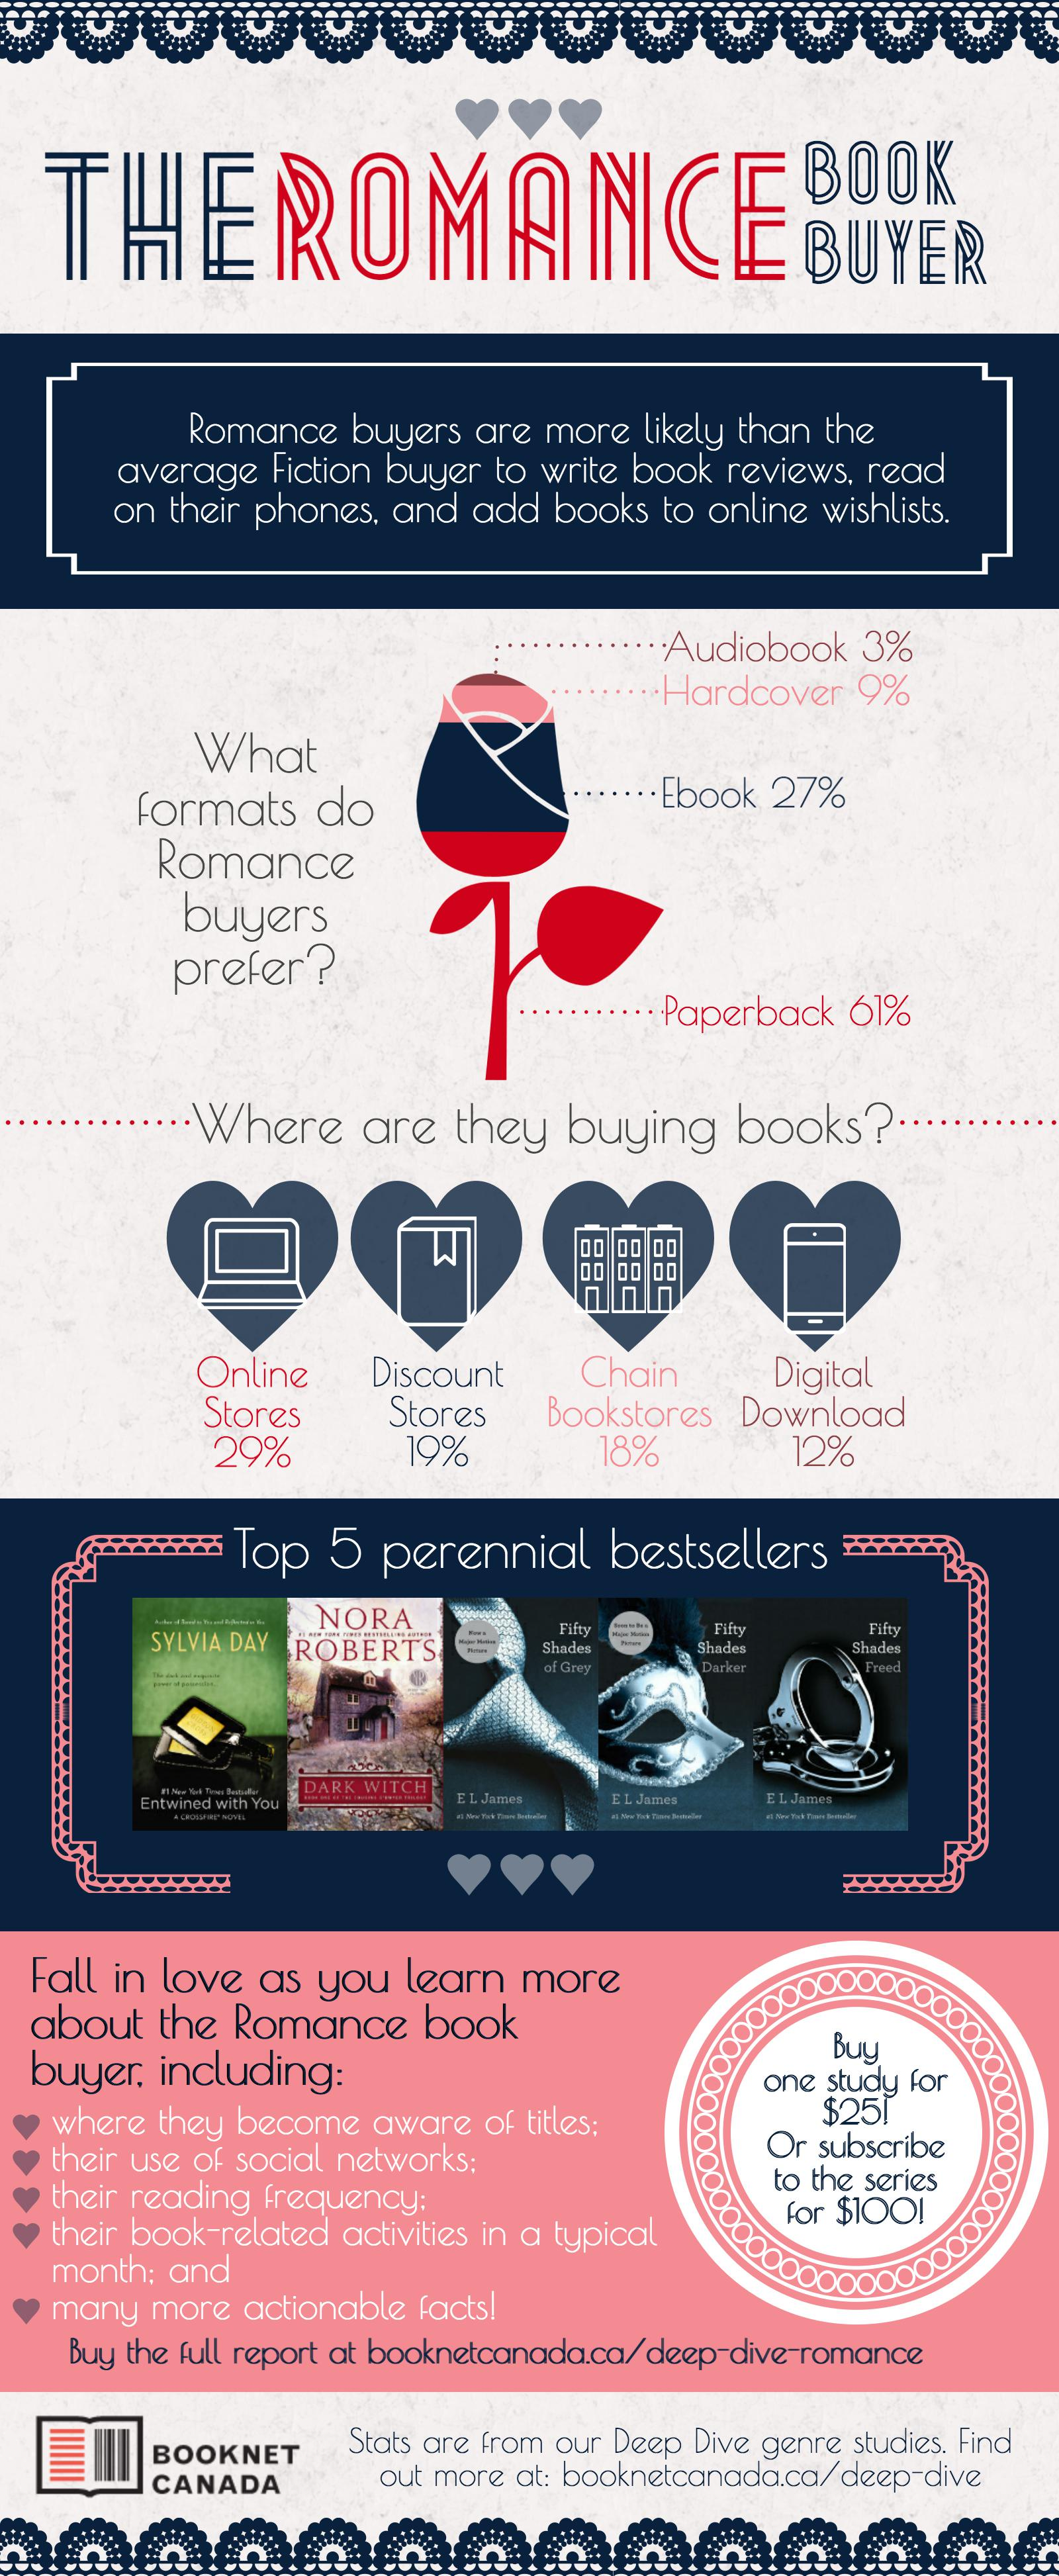 The Romance book buyer. For the information provided in the image, please scroll down.